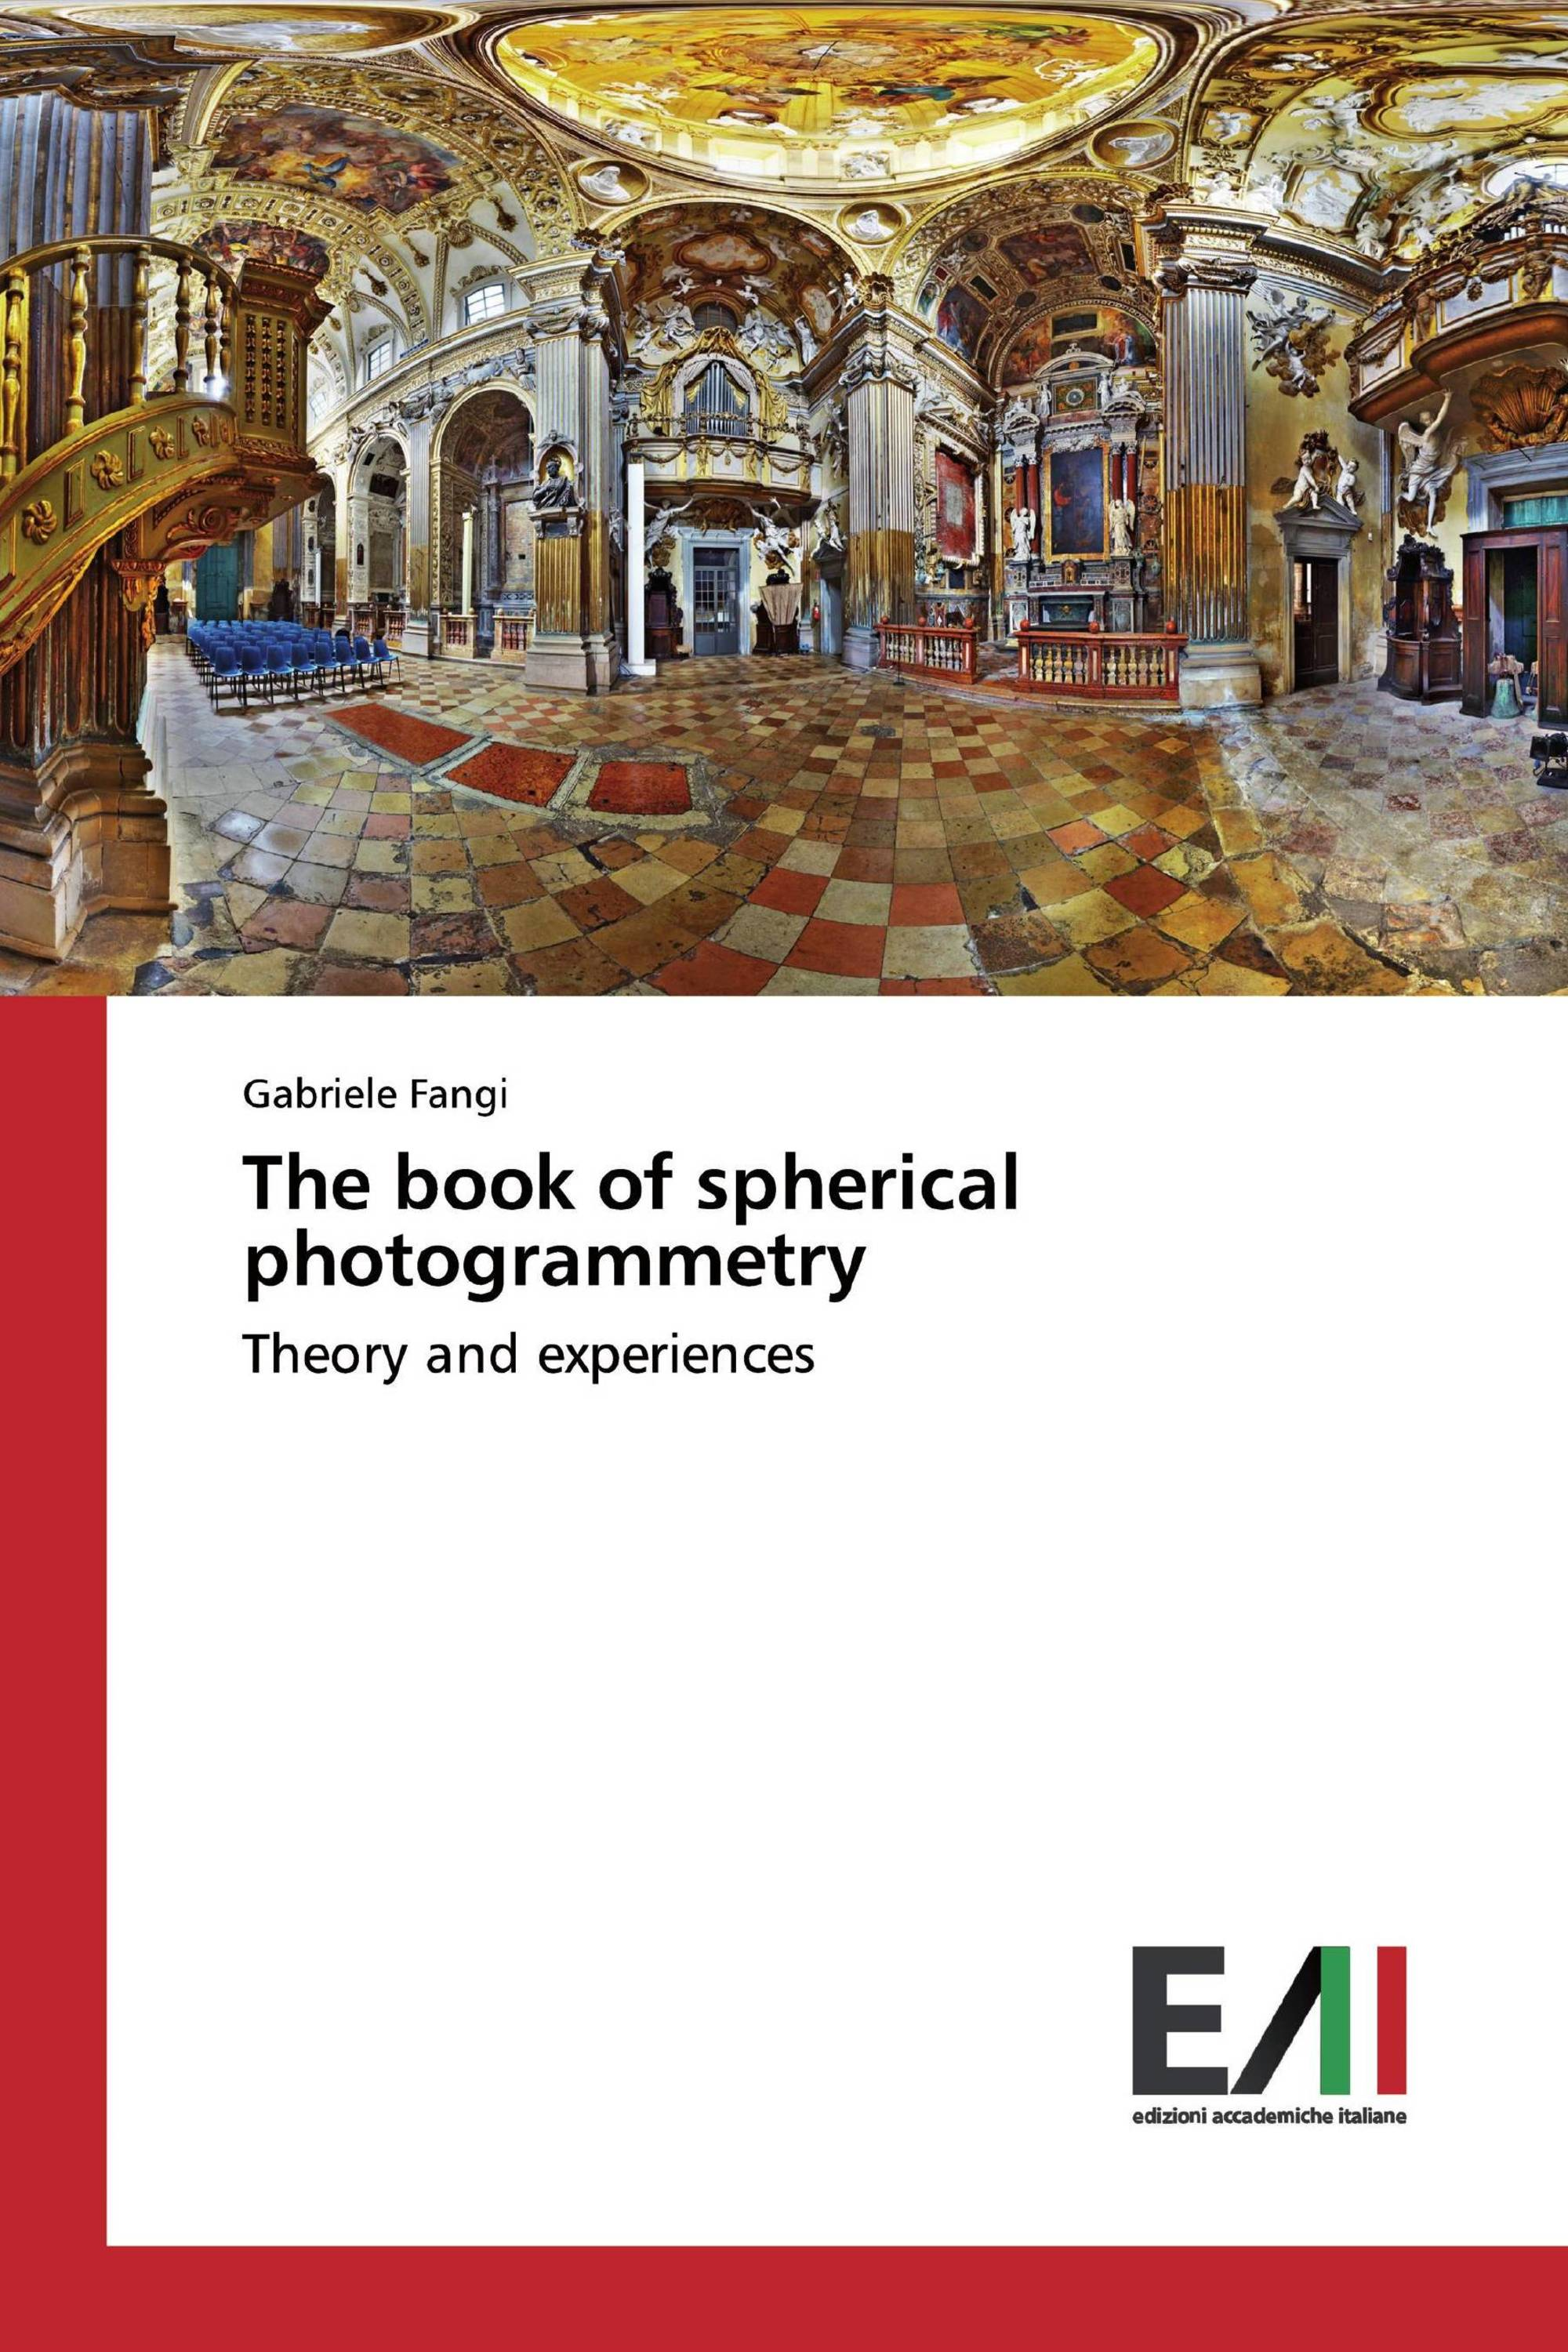 The book of spherical photogrammetry